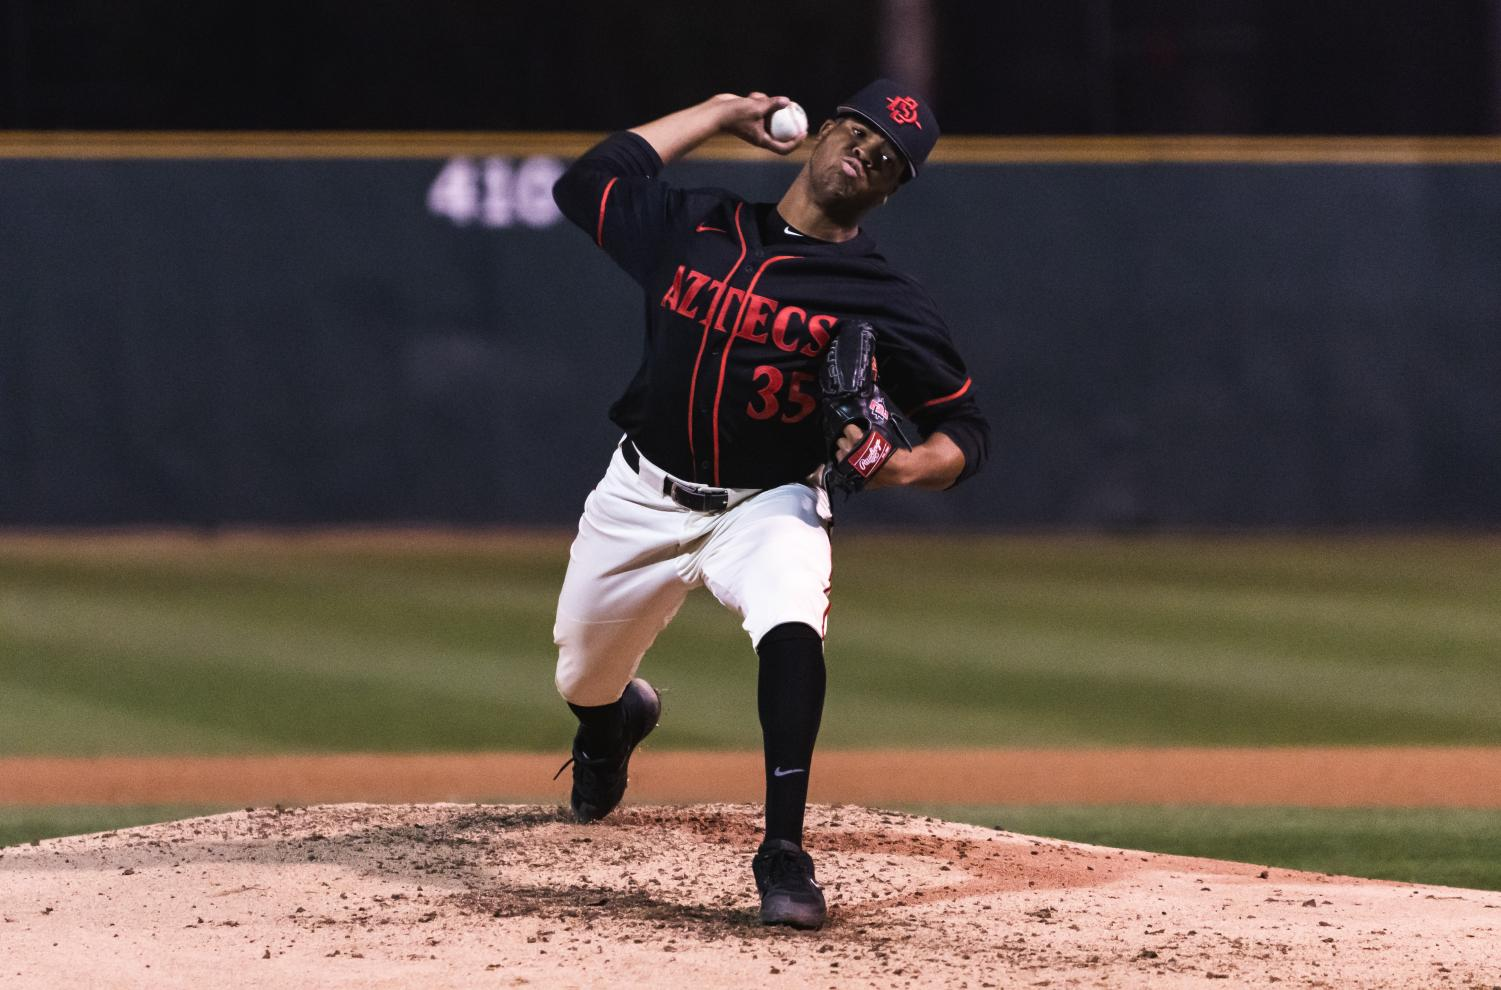 Freshman pitcher Aaron Eden works off the mound during the Aztecs 4-2 loss to San Diego on Feb. 26 at Tony Gwynn Stadium.